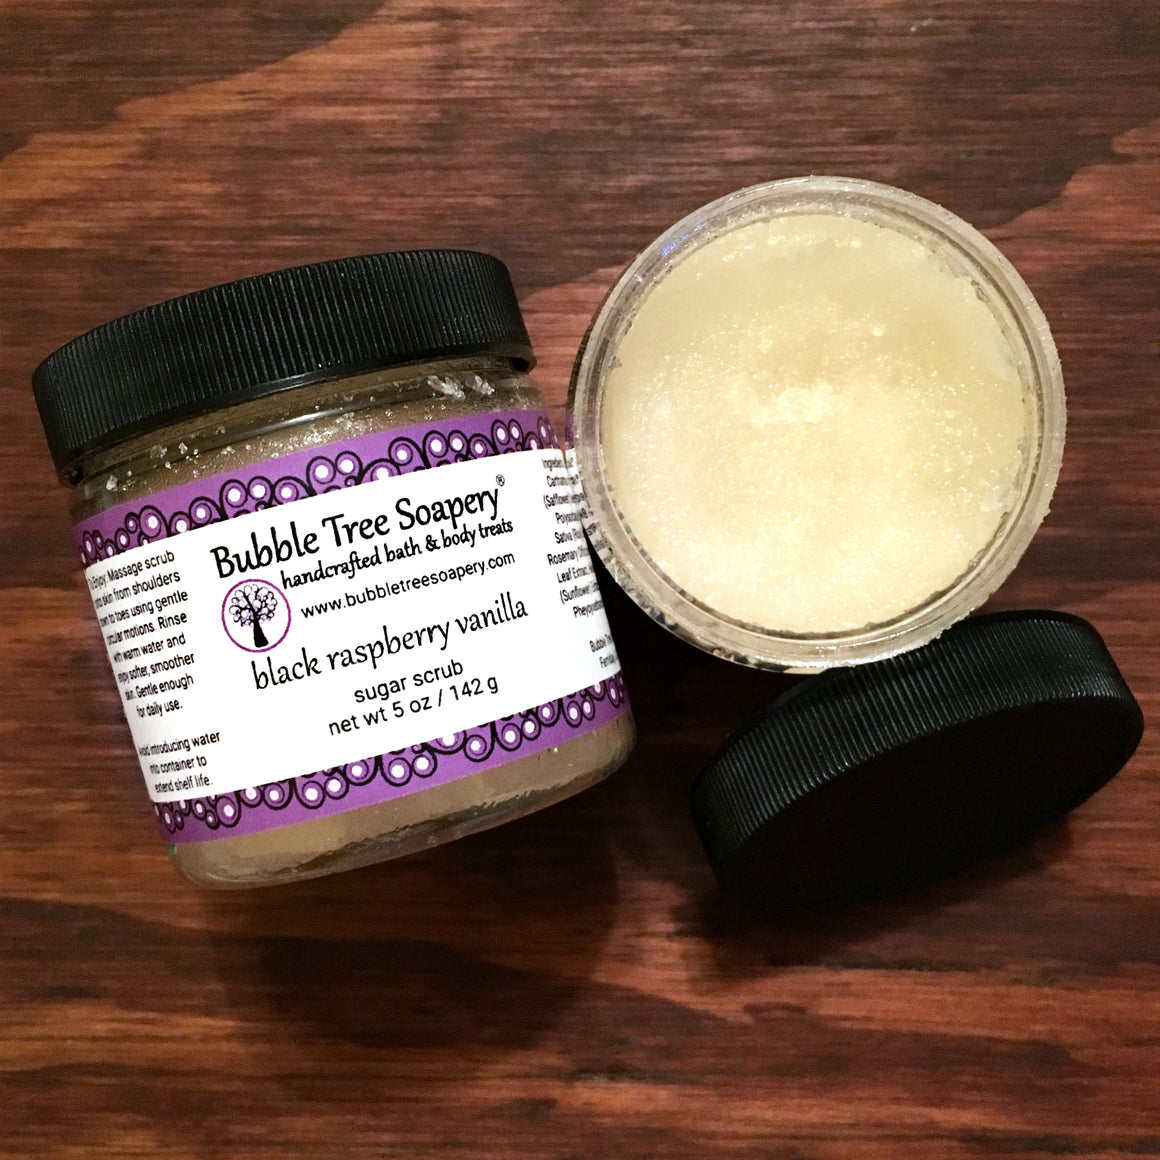 Black Raspberry Vanilla Sugar Scrub | Bubble Tree Soapery